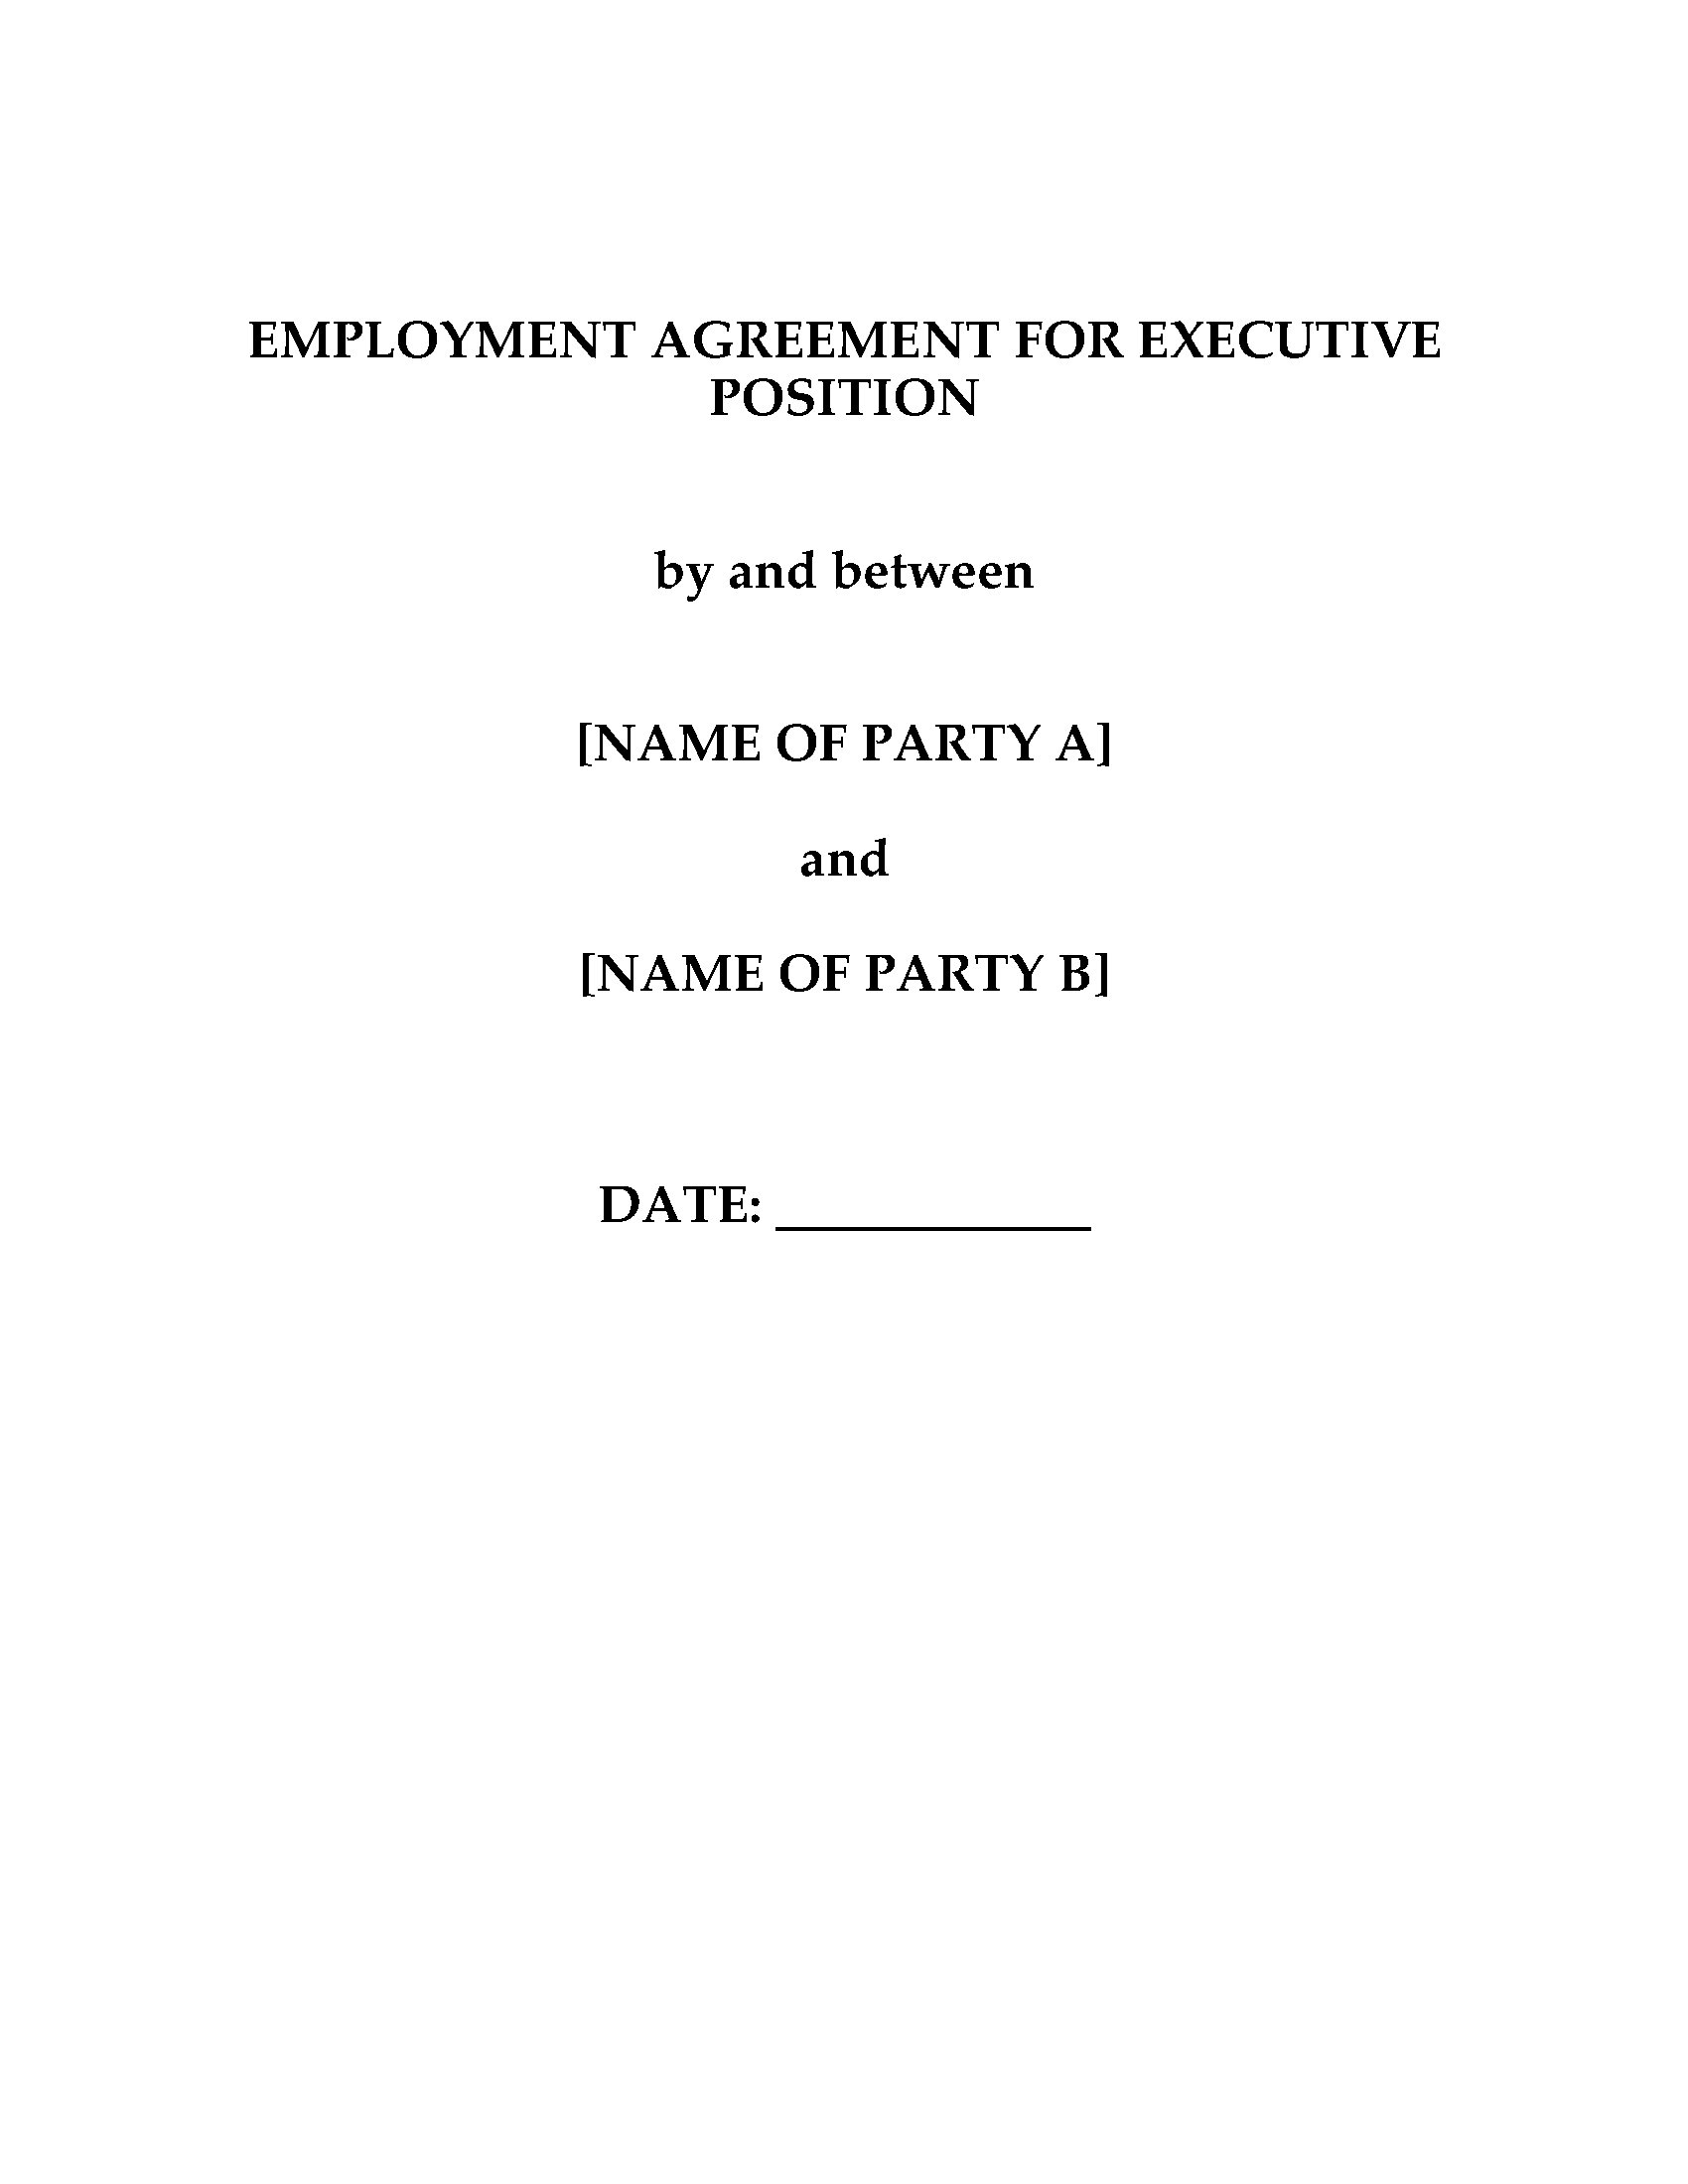 China ceo employment agreement template legal forms and business picture of employment agreement for ceo china platinumwayz